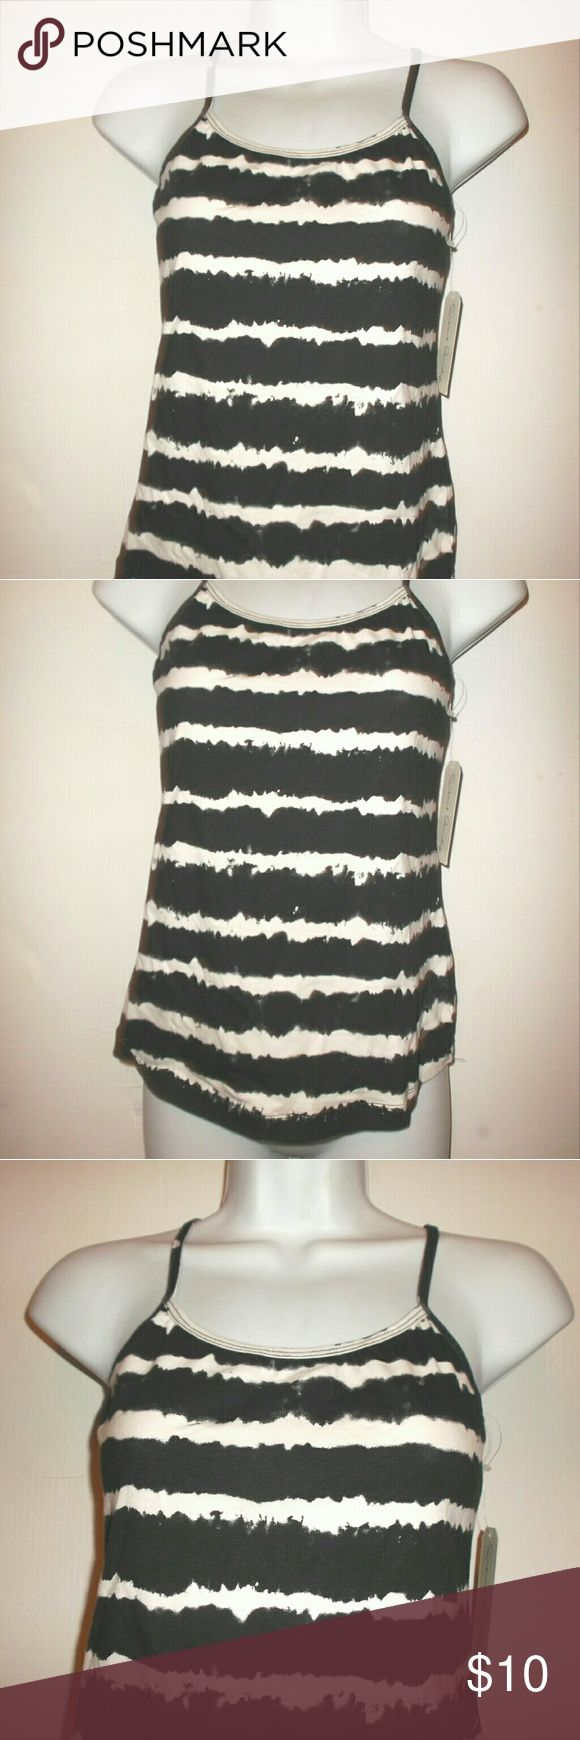 French Laundry Stretch Camisole Top Womens Medium New with tags!   A stretchy cami top by French Laundry in size medium.   Black and white stripes.   95 % cotton, 5 % Spandex fabric.   Very stretchy!   Adjustable stretch straps.    Measures 14.5 inches across the front from underarm to underarm  unstretched   15 inches underarm to bottom hem French Laundry Tops Camisoles